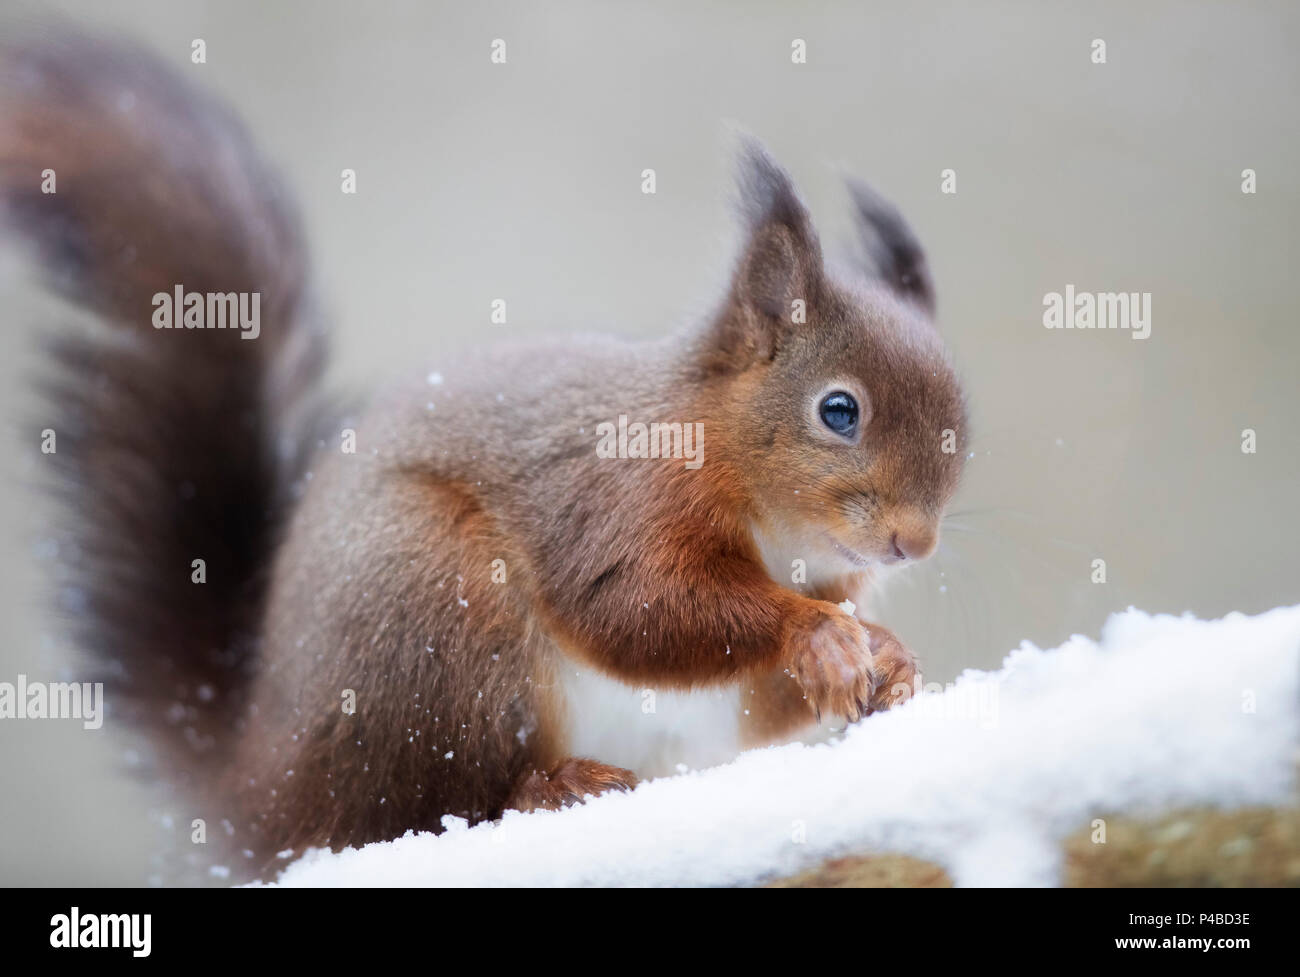 Red squirrel in woods in snow - Stock Image